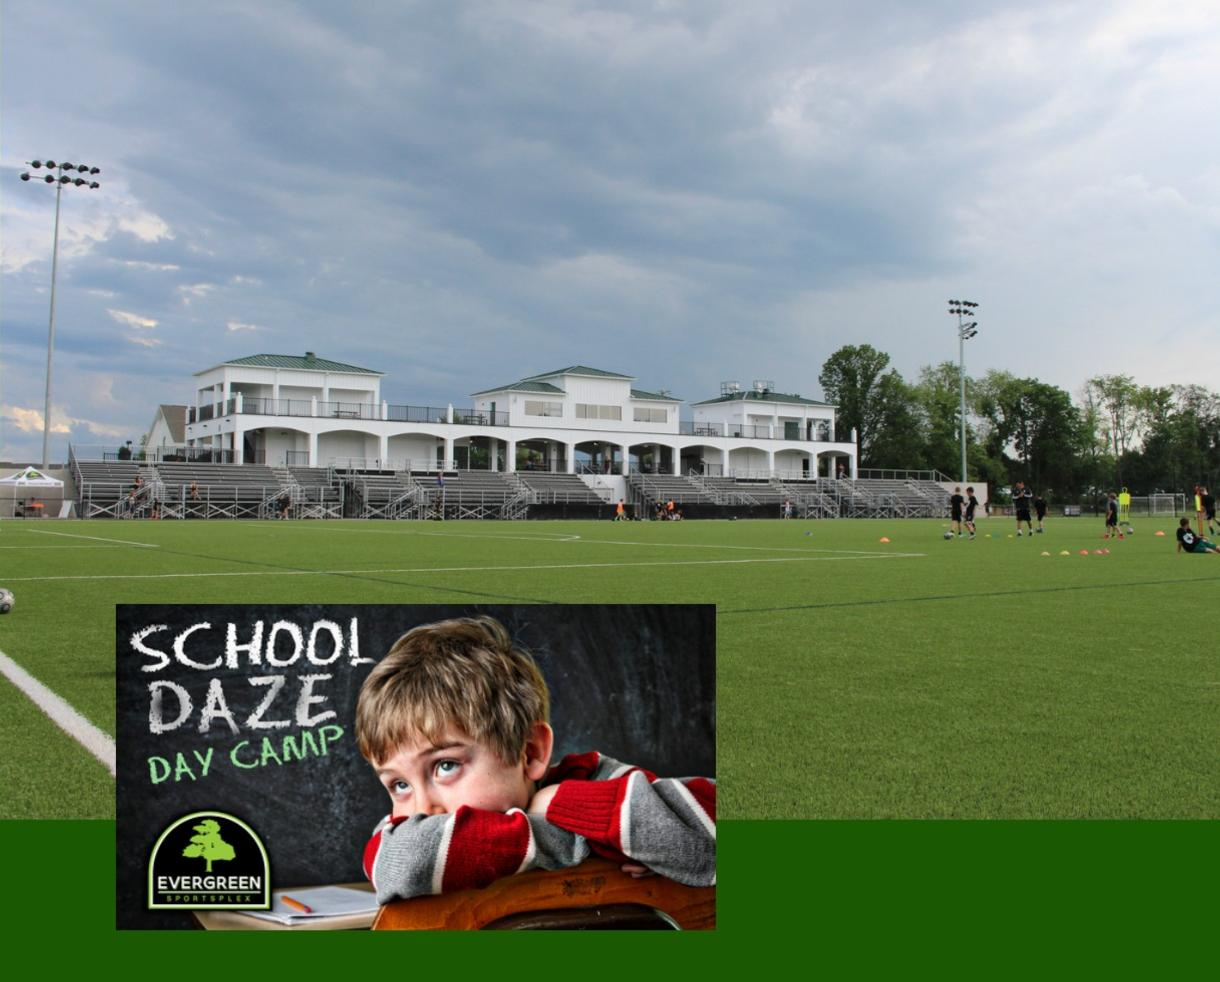 $27 for Evergreen Sportsplex School Daze Day Camp for Ages 6-15 in Leesburg (23% Off!)